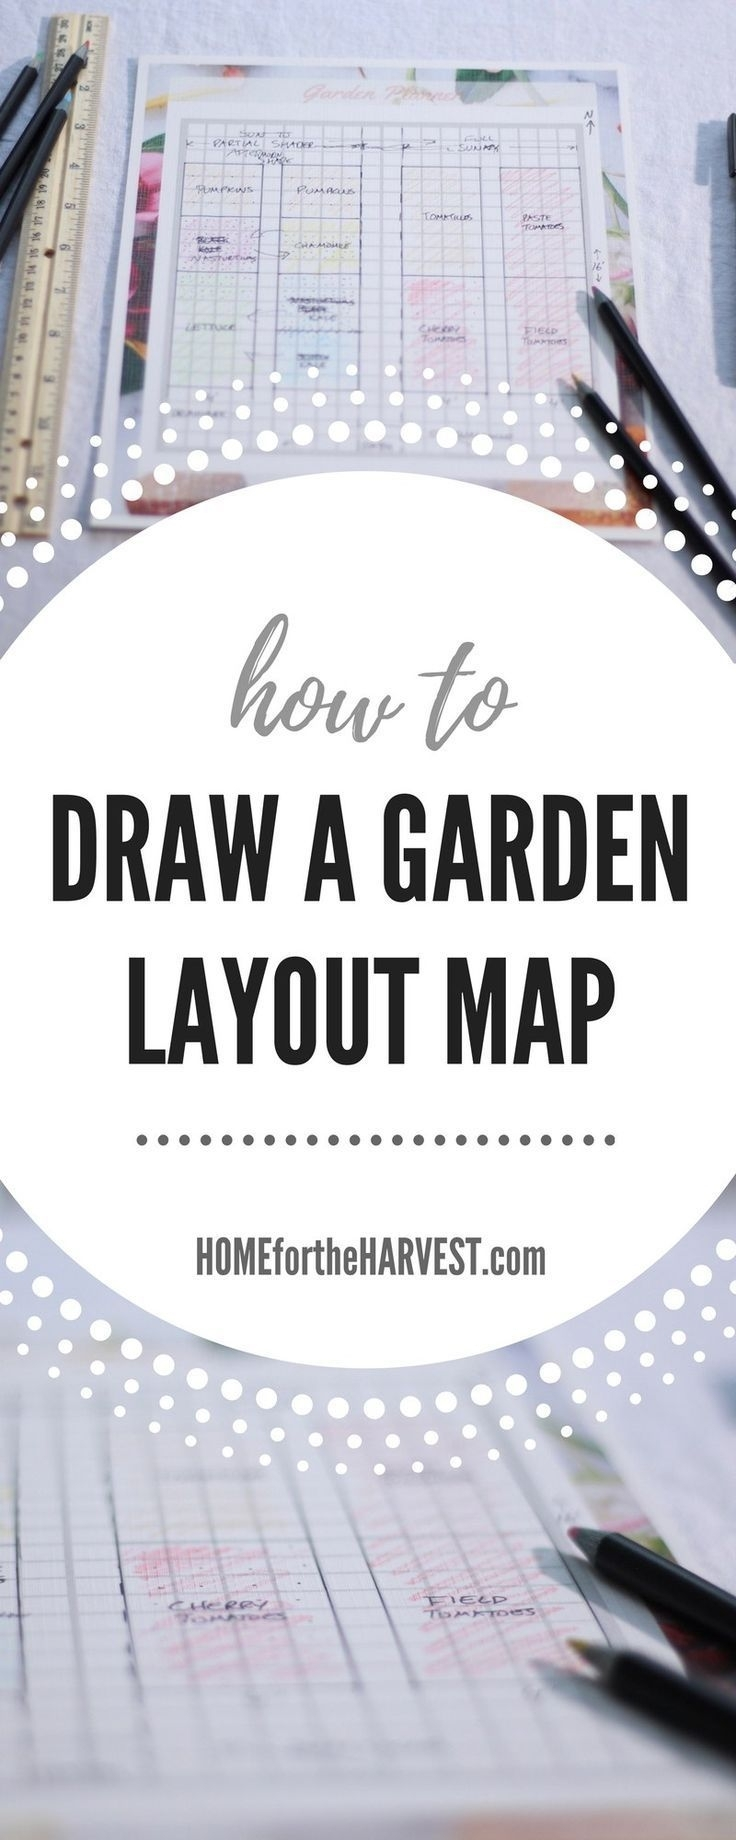 25+ Best Ideas About Garden Layouts On Pinterest | Vegetable inside Best Layout For Garden Heights Apartments Design Ideas